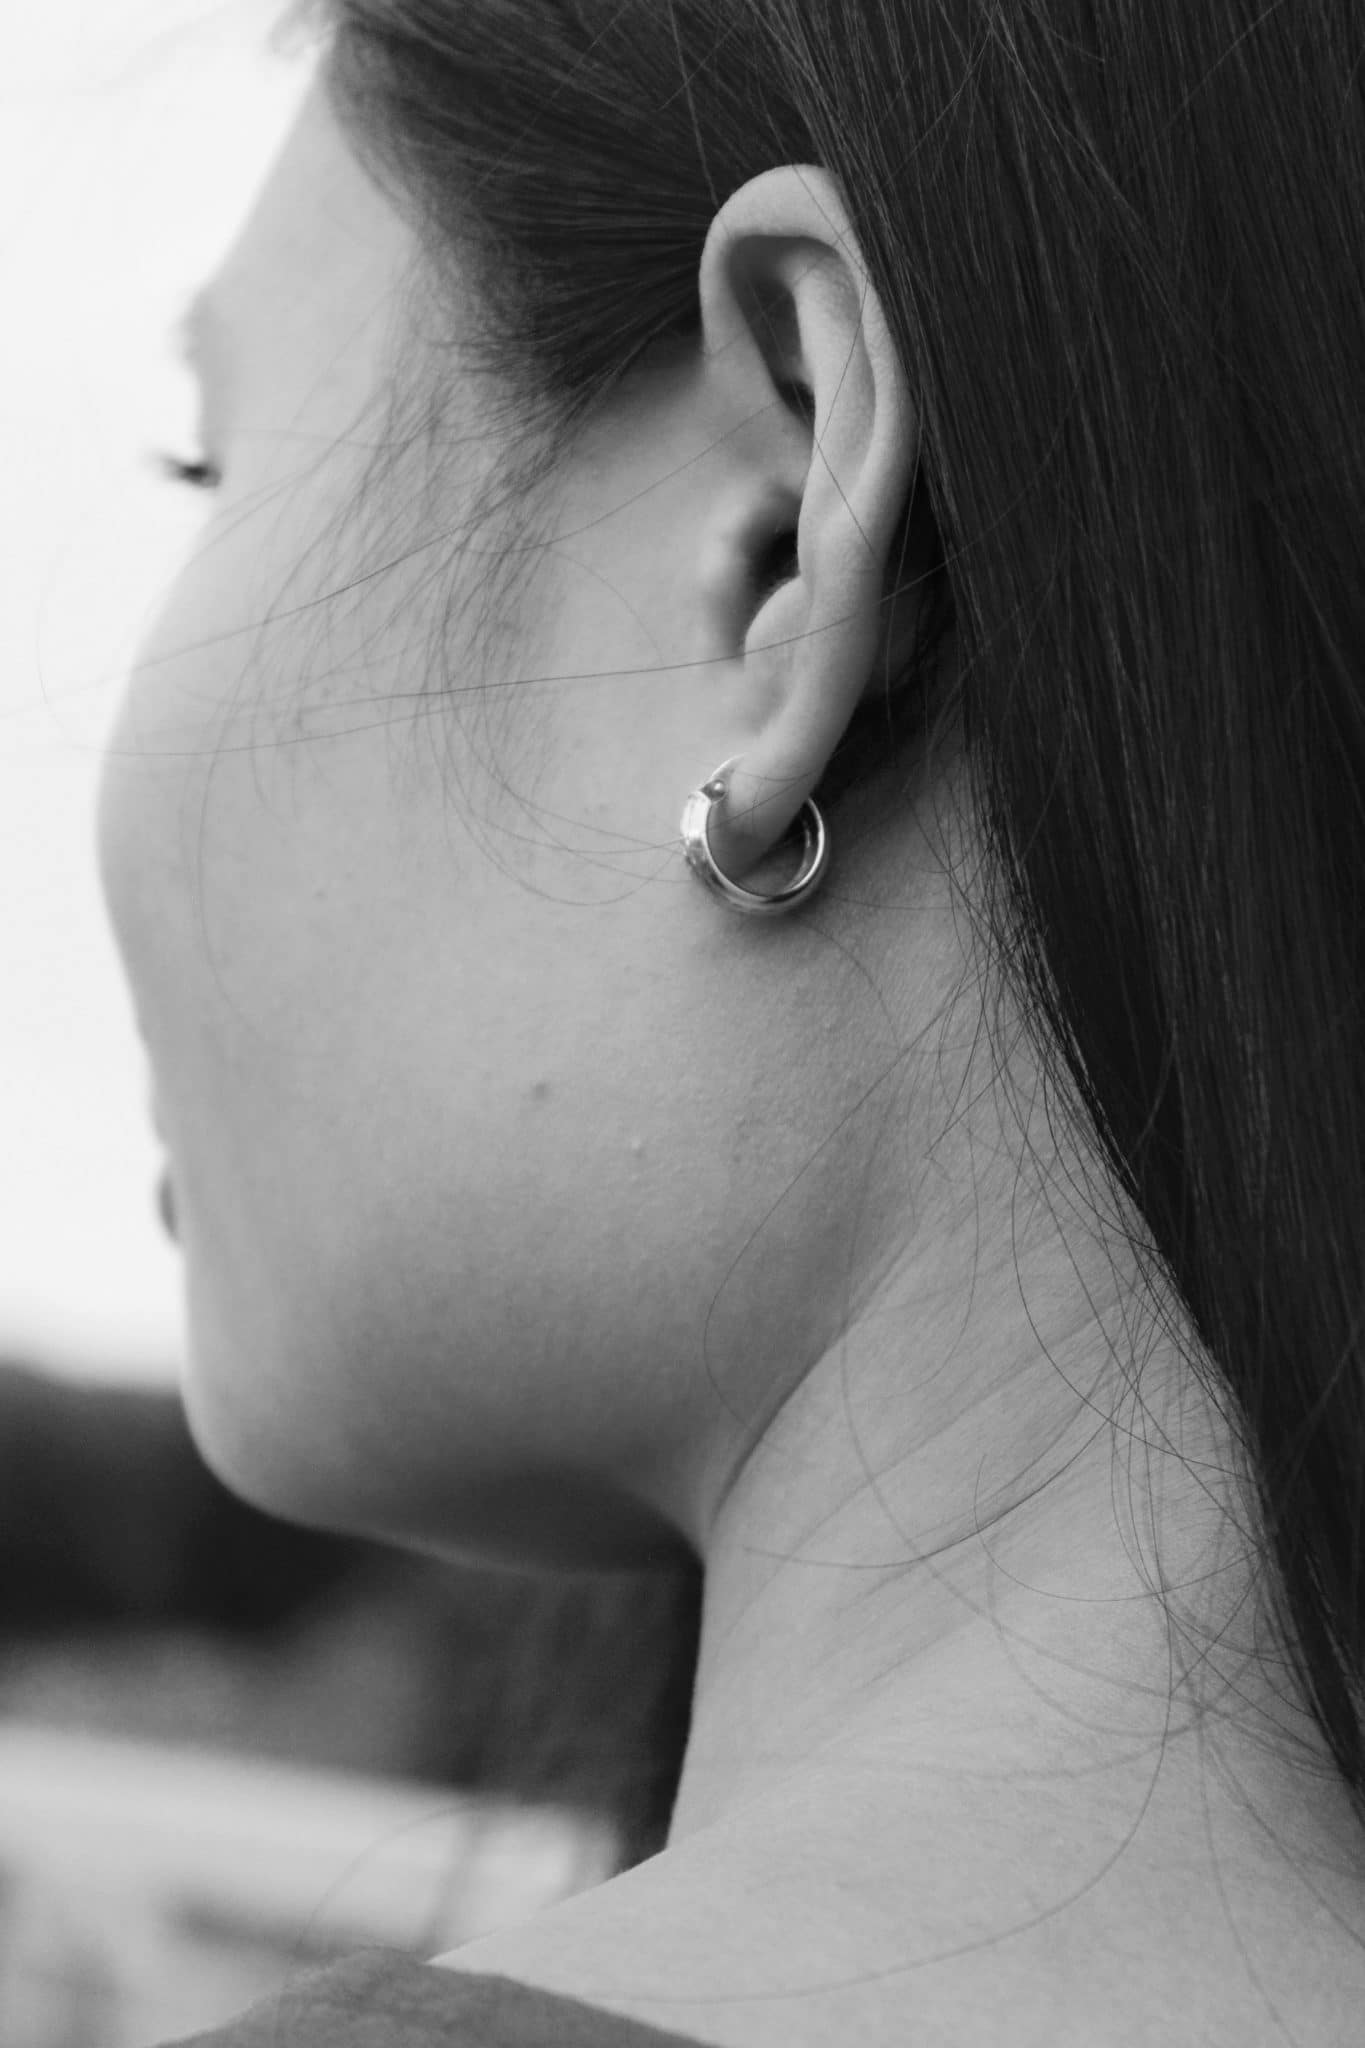 A close-up of a woman's ear